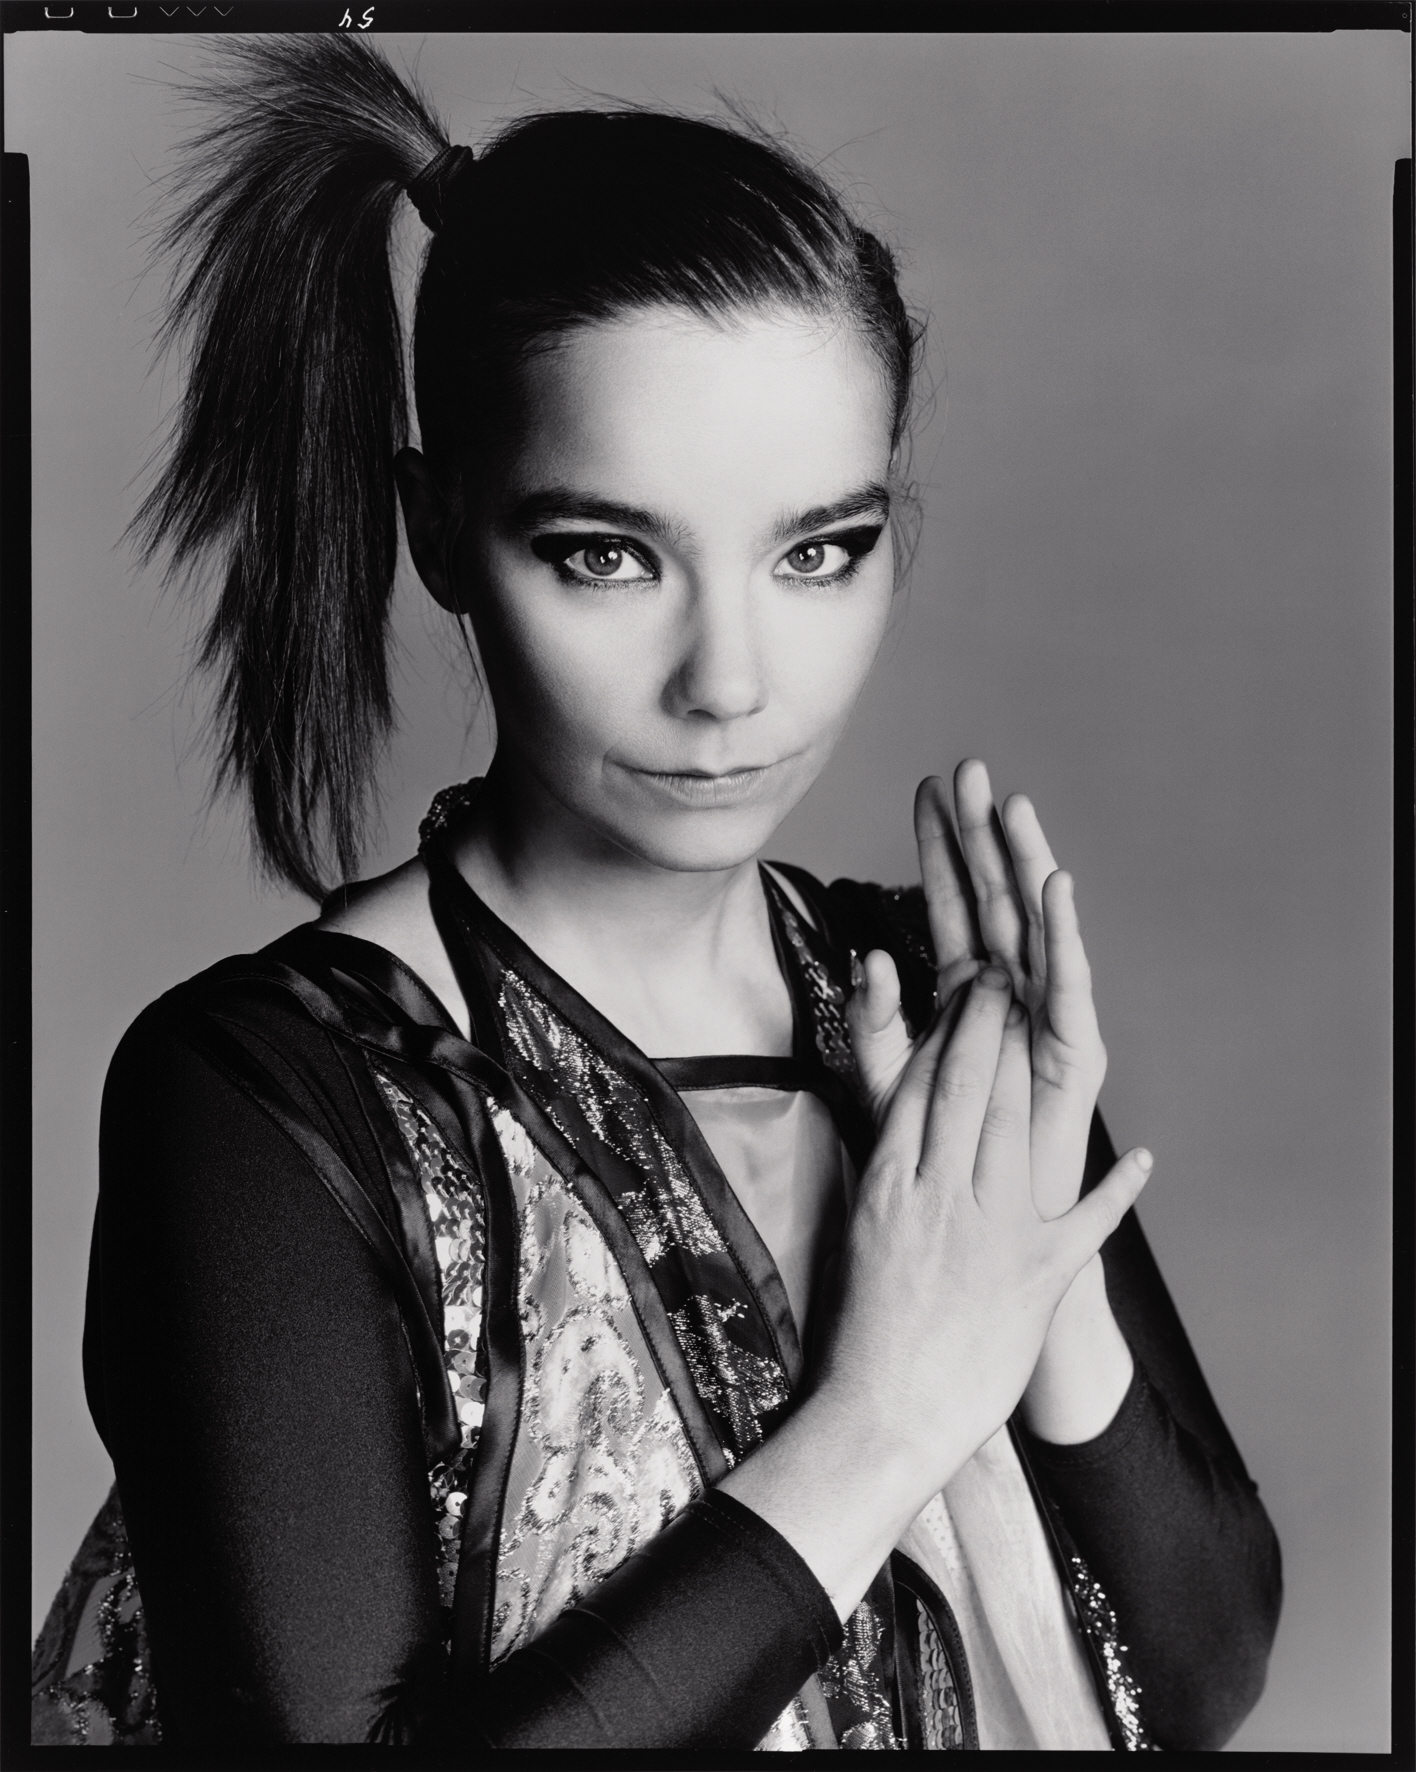 richard_avedon_bjork